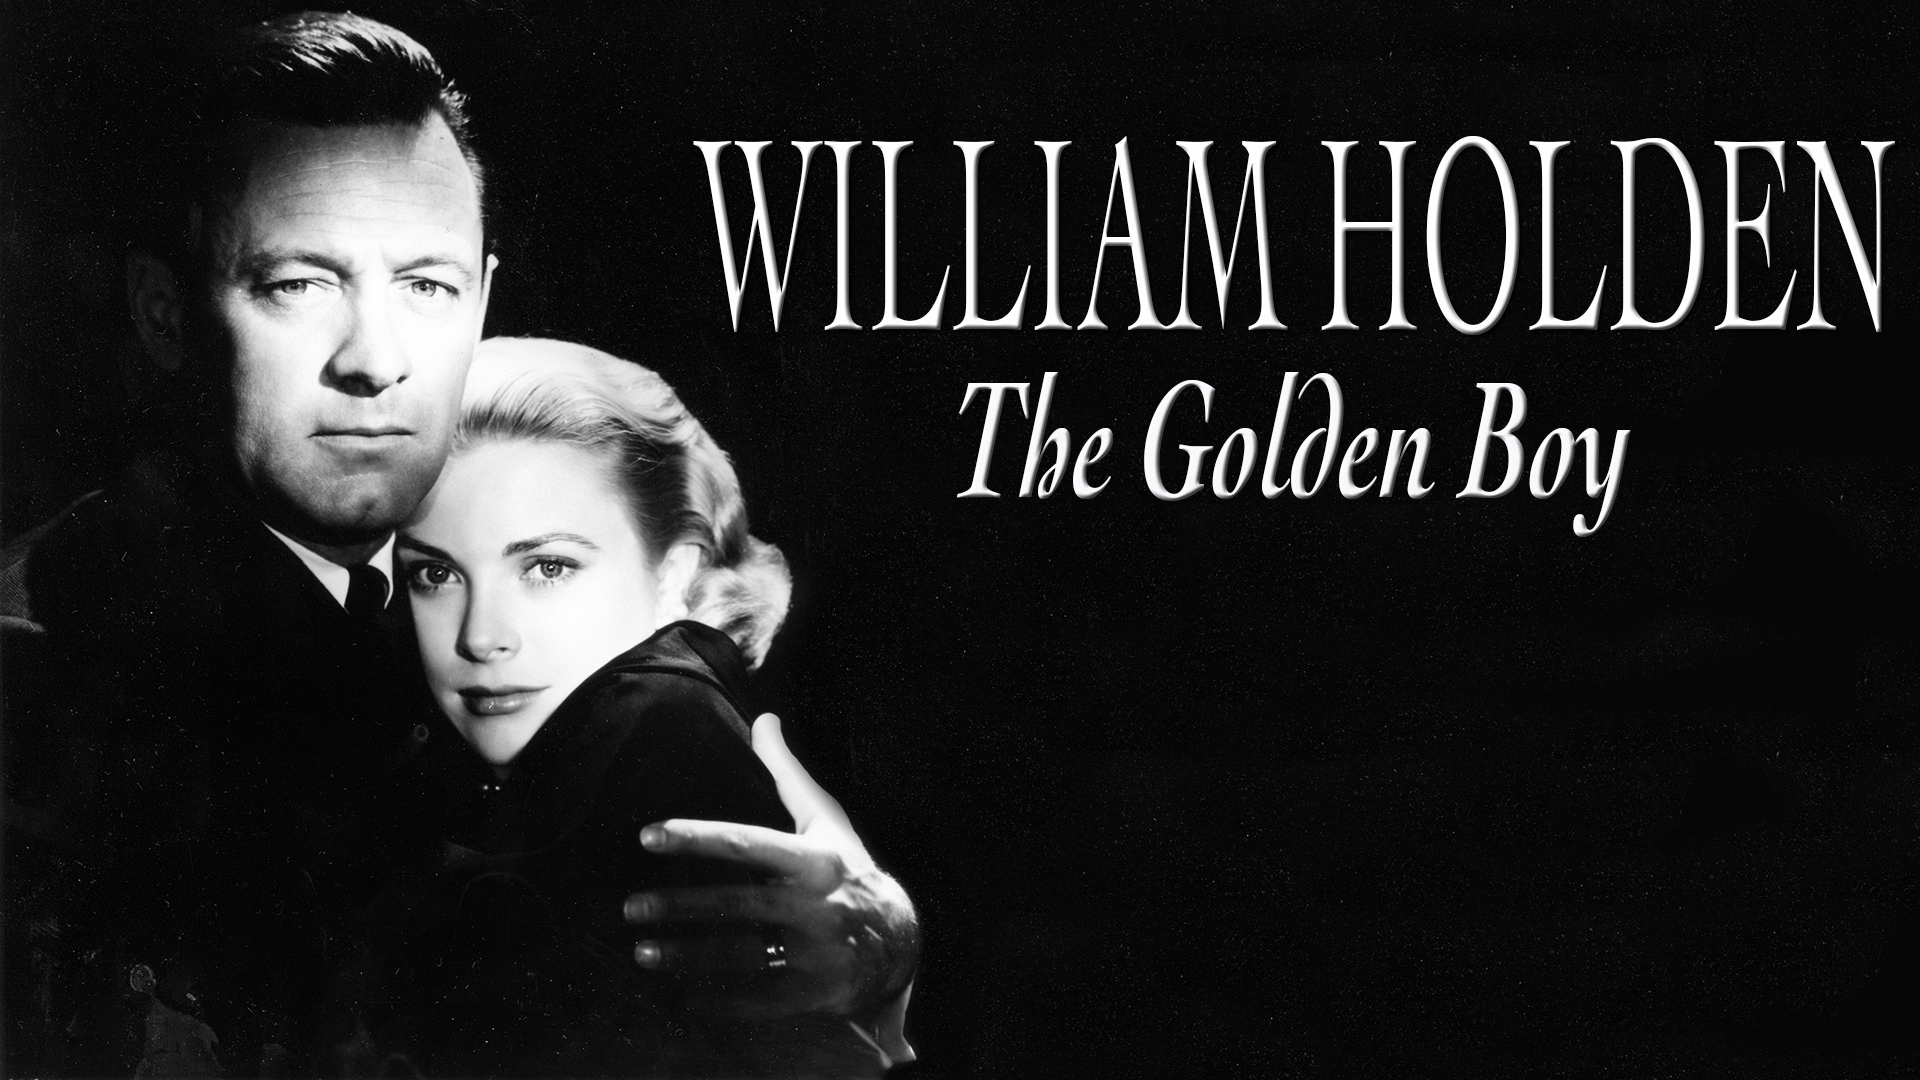 The Hollywood Collection: William Holden - The Golden Boy